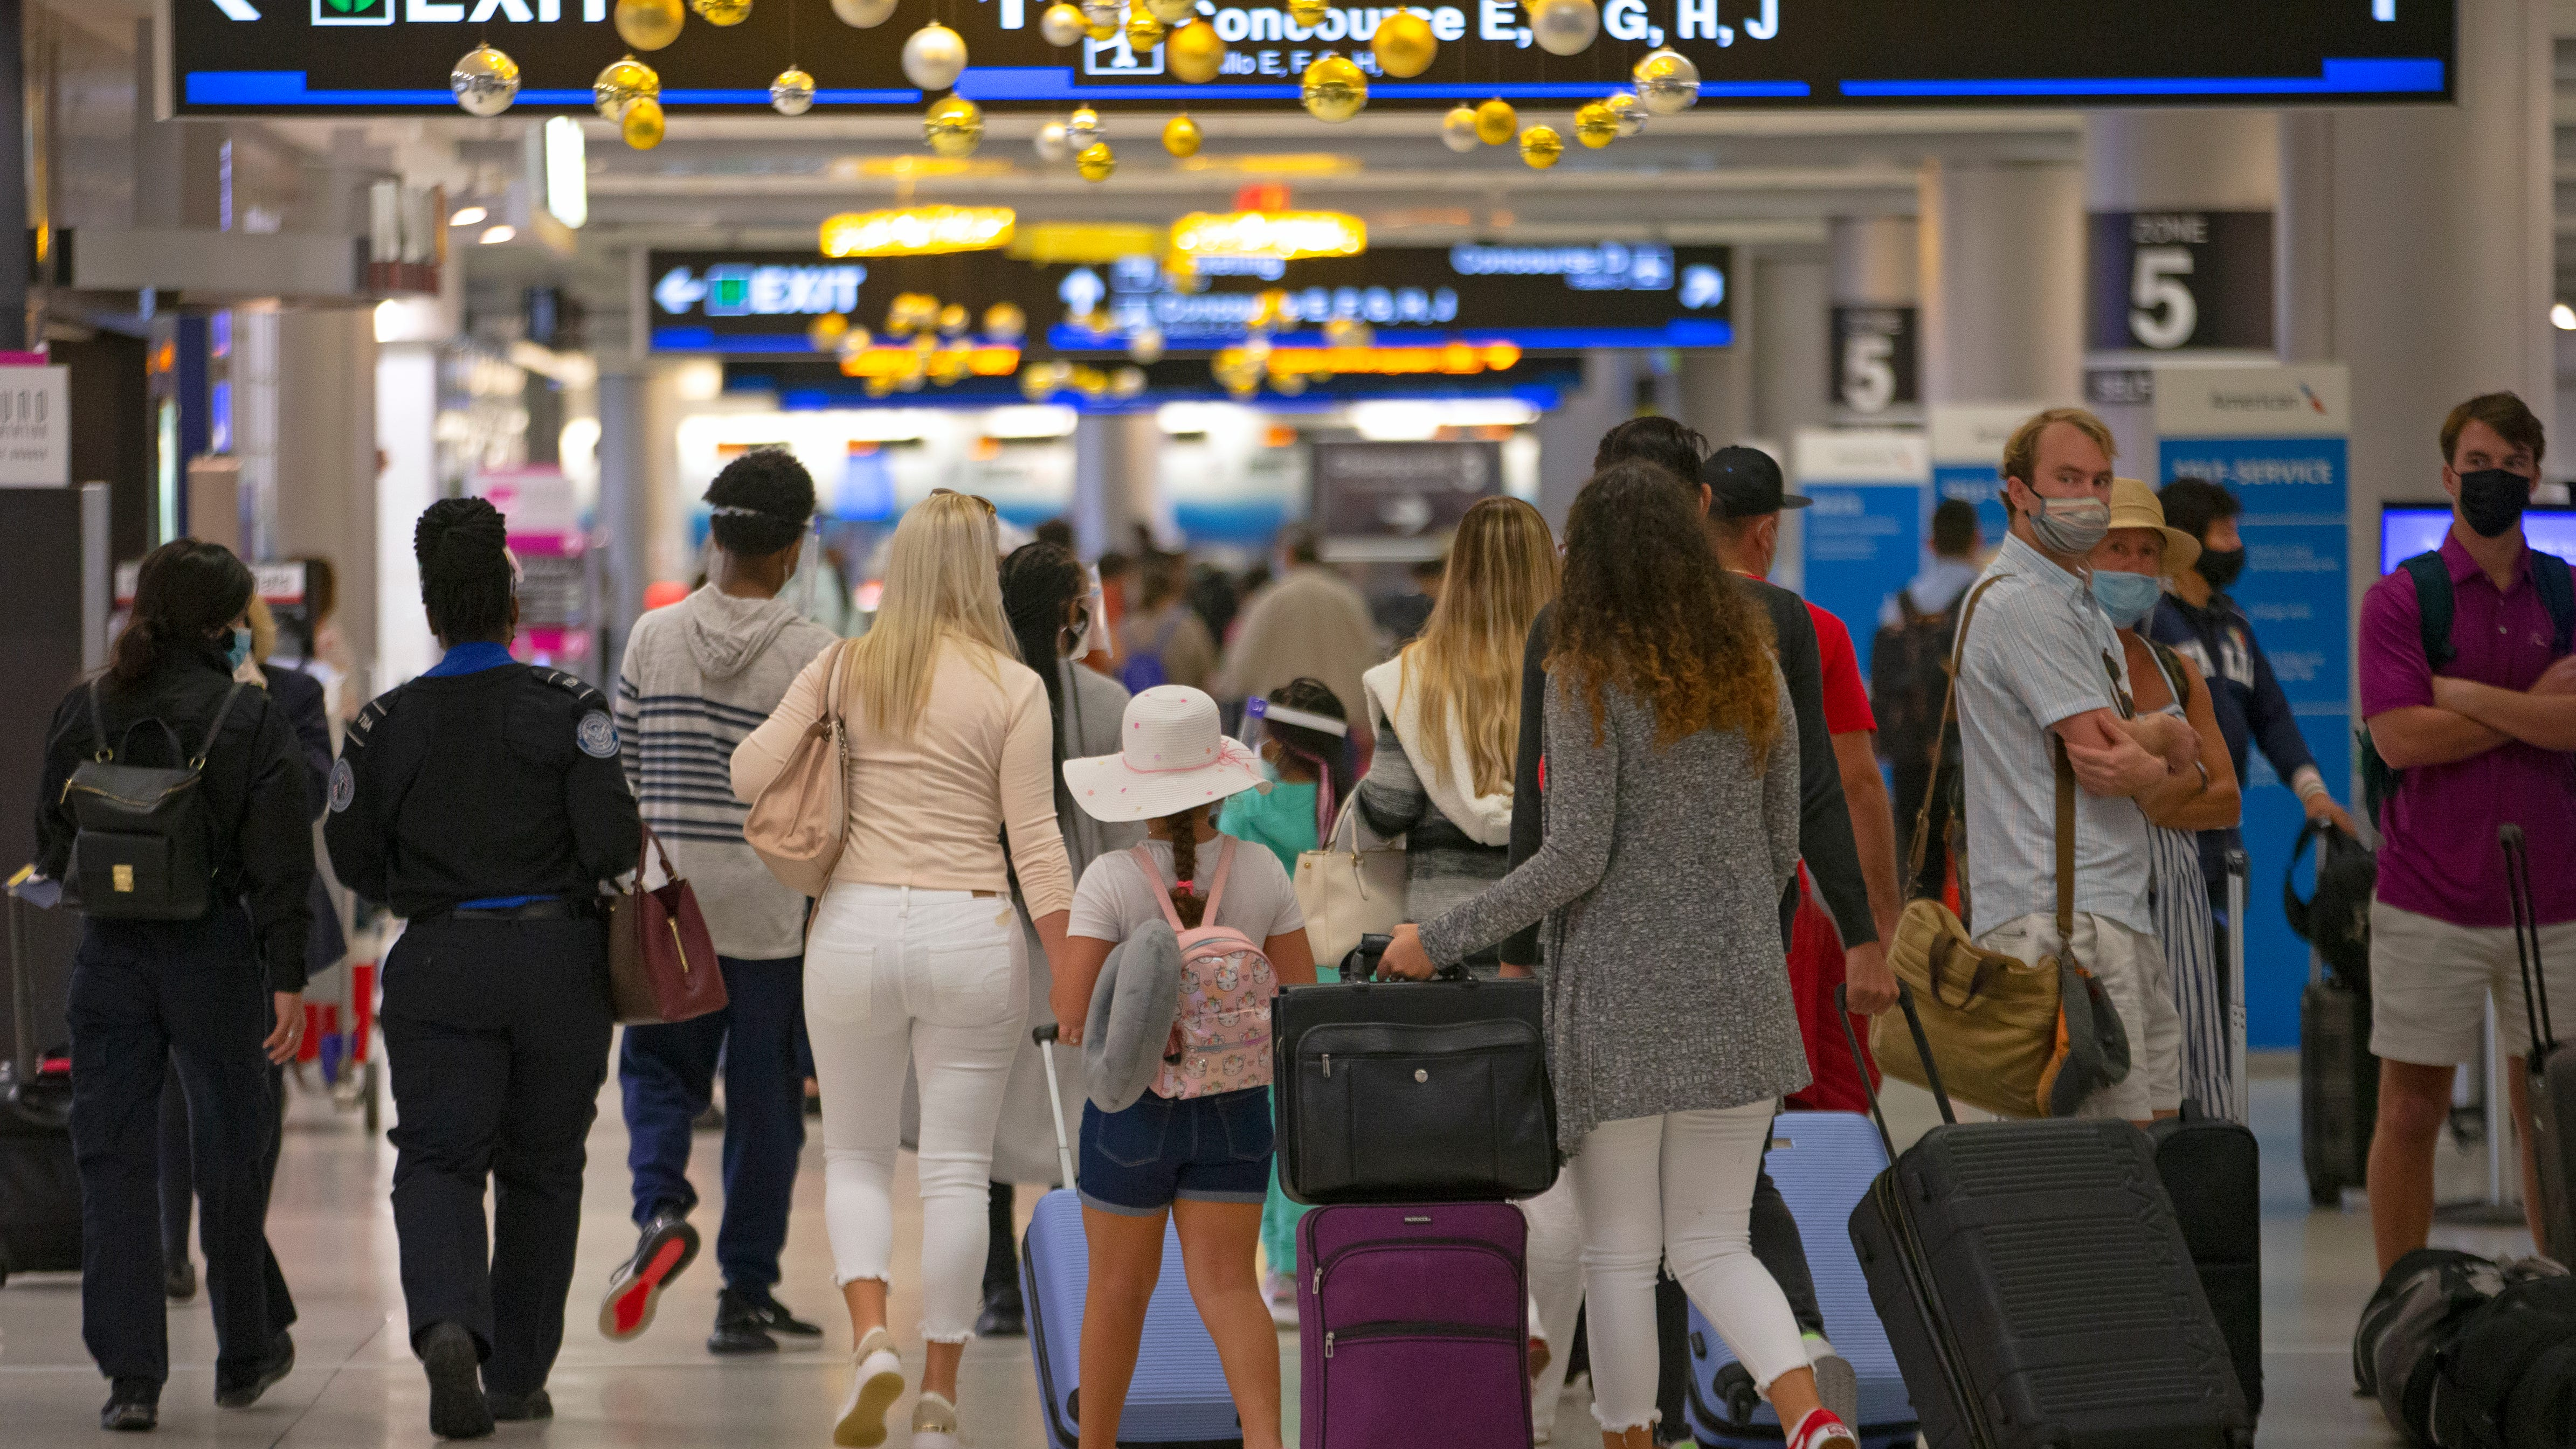 Travelers wearing protective face masks walk through Concourse D at the Miami International Airport on Nov. 22.